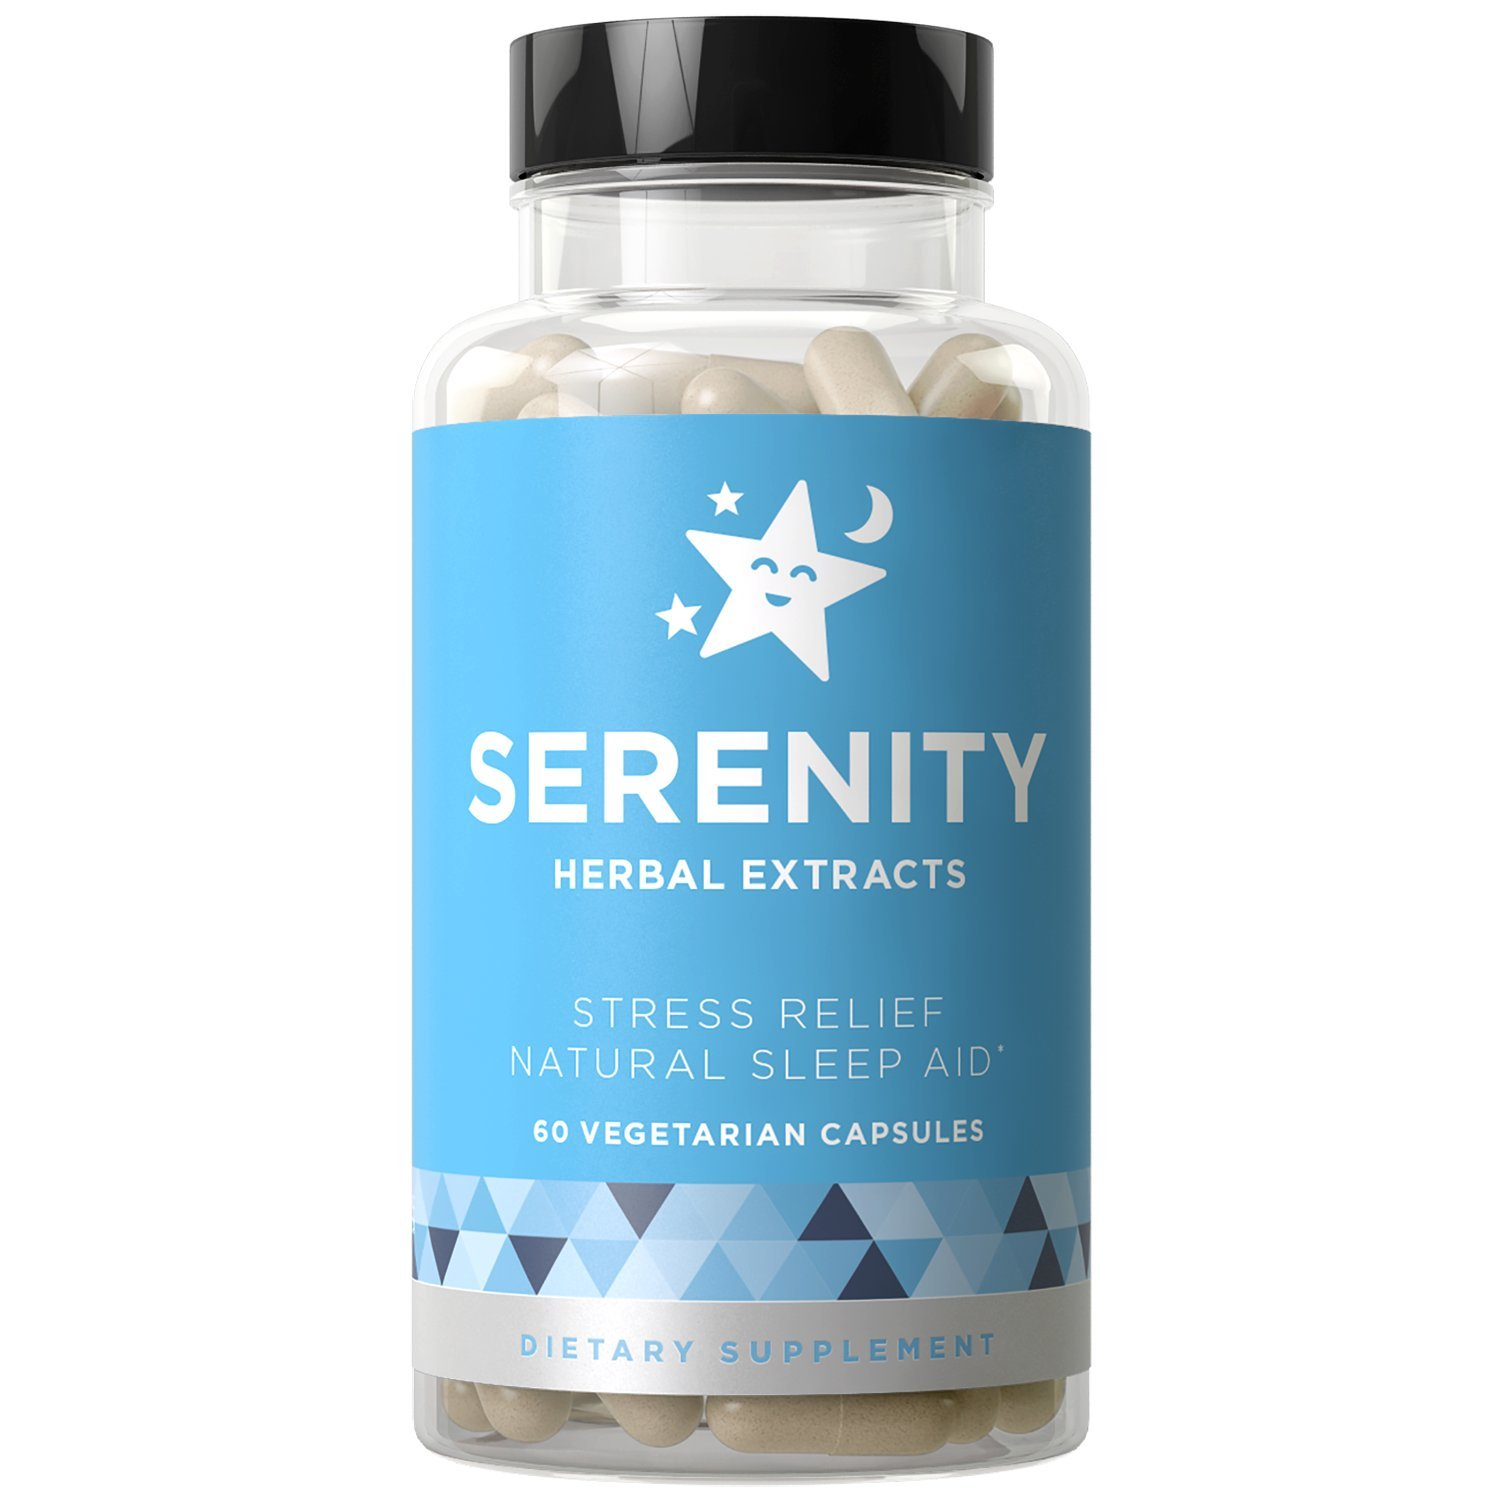 SERENITY Natural Sleep Aid, Stress & Anxiety Relief - Relaxes Mind & Body, Fall Asleep Fast Without Waking Up Groggy - Non-Habit Forming - Magnesium, Valerian, Chamomile - 60 Vegetarian Soft Capsules